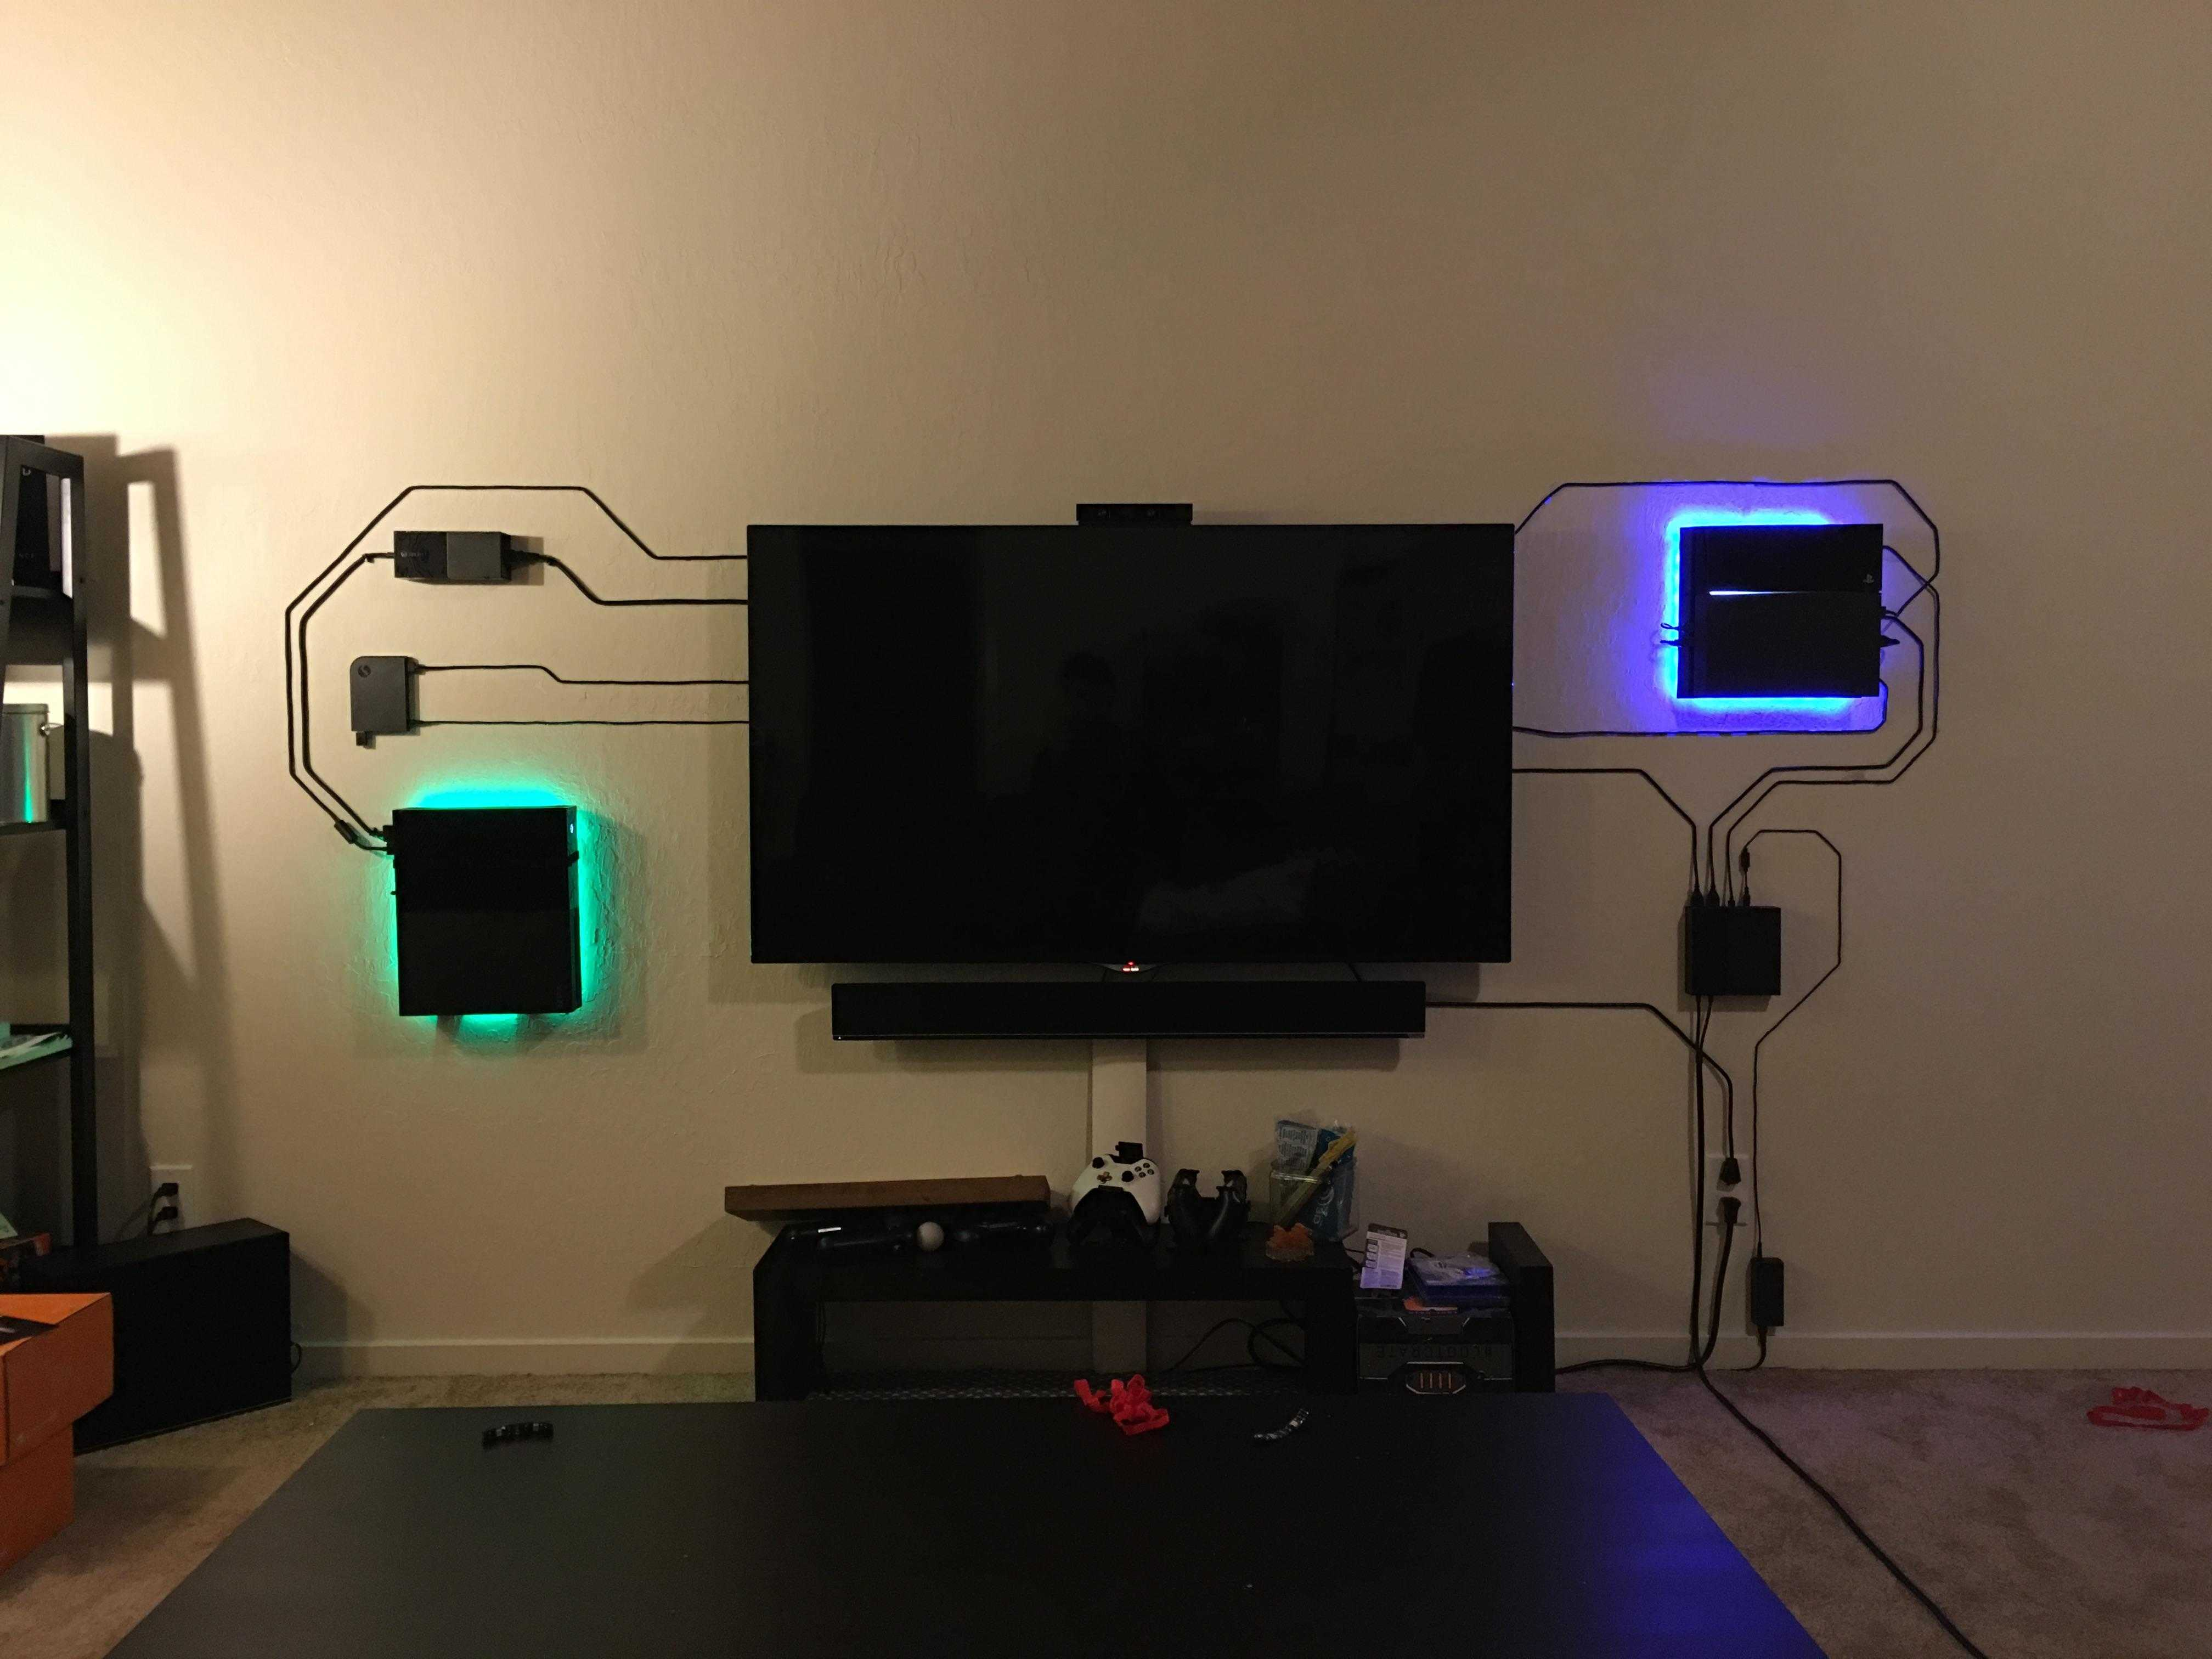 This Home Theater Setup Makes Exposed Wires Look Cool Top View Of The Completed Circuit Board Waiting To Be Mounted On